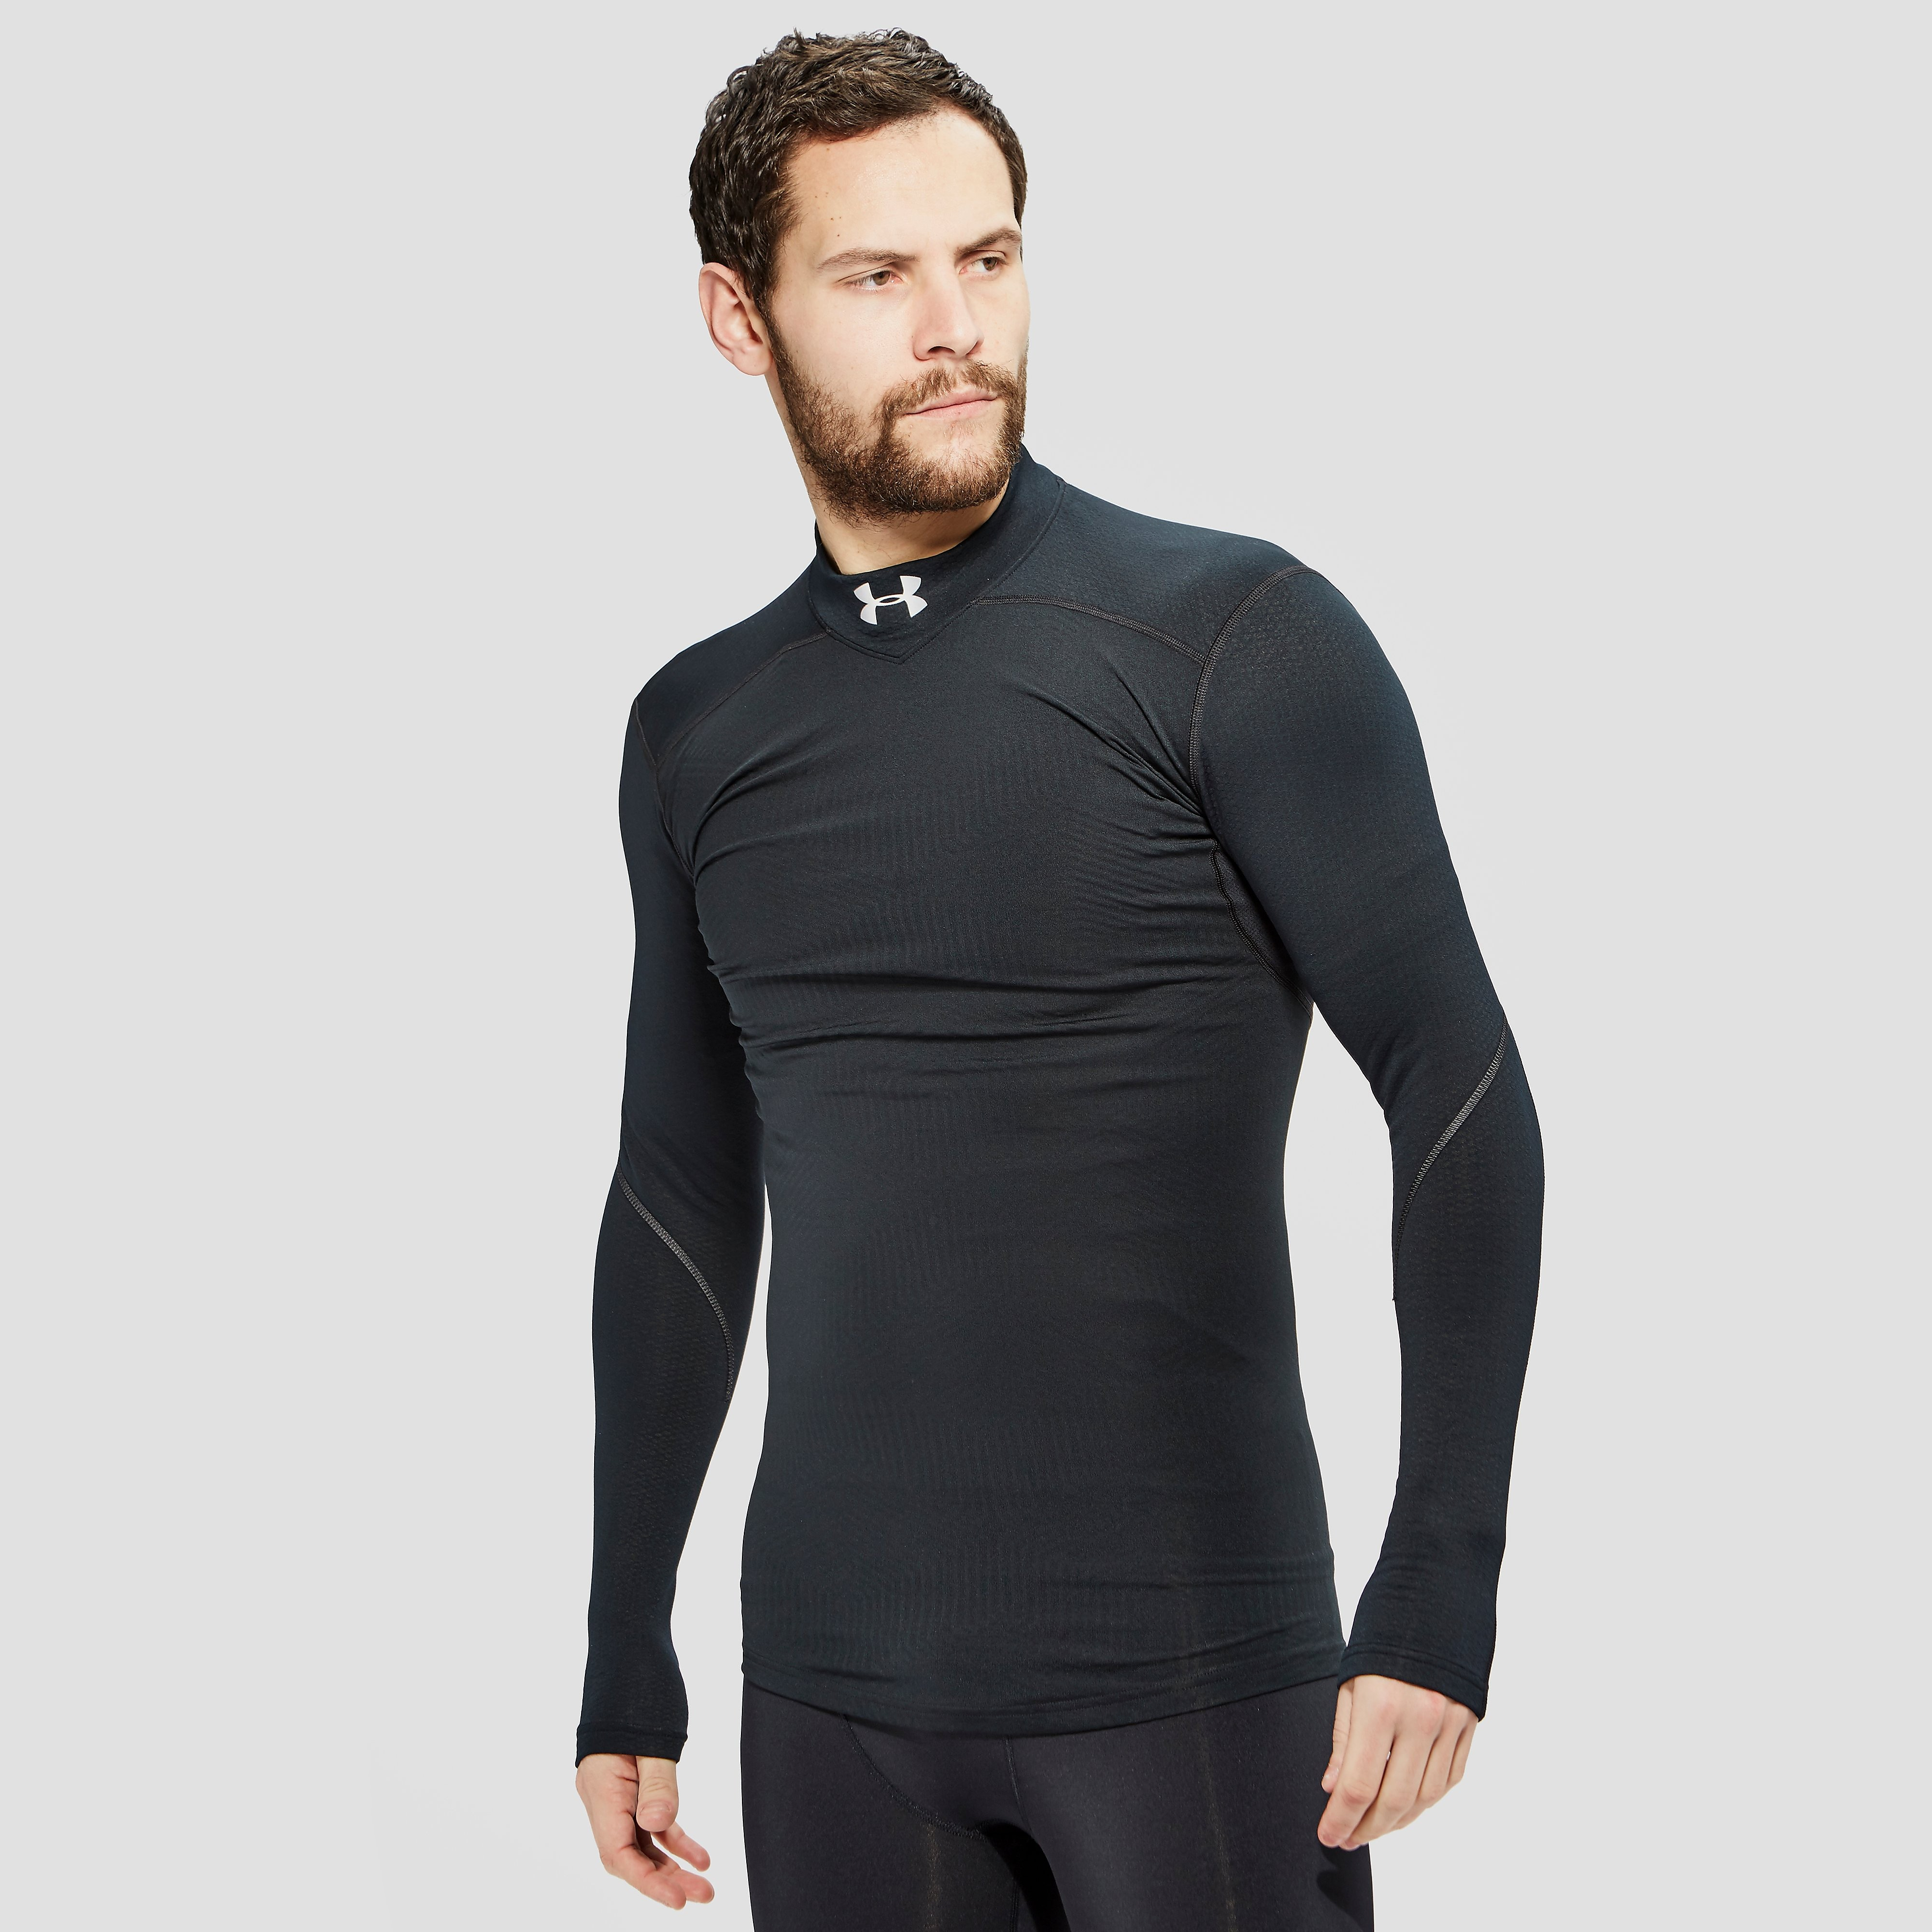 Under Armour ColdGear Men's Compression Mock